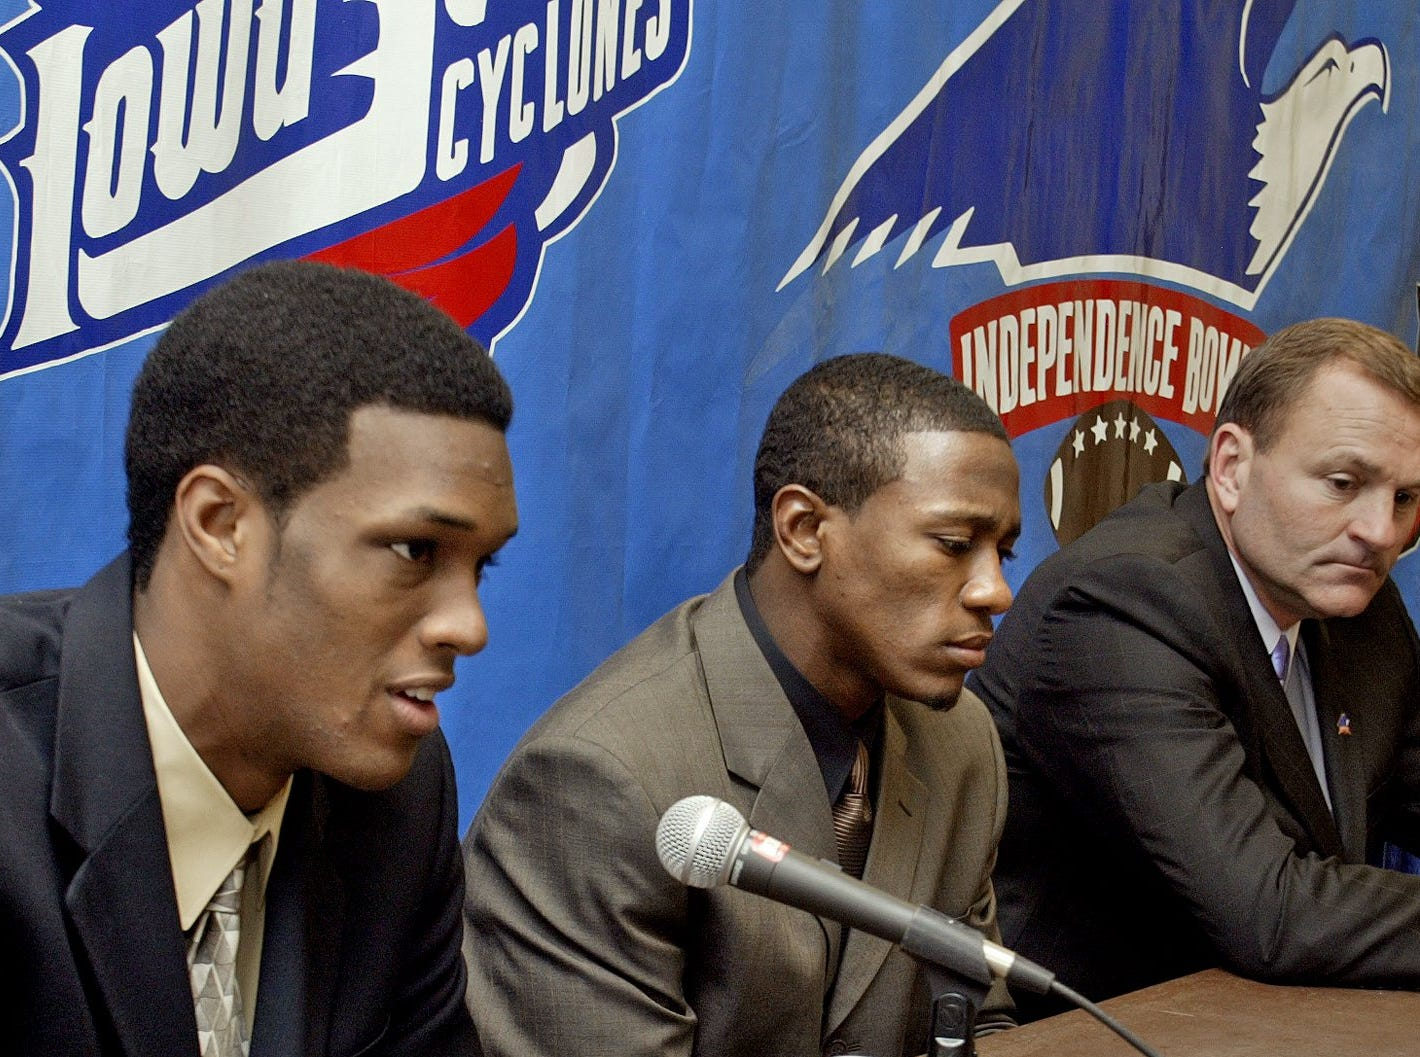 Iowa State coach Dan McCarney, right, with quarterback Bret Meyer, left, and defensive back Ellis Hobbs at a news conference before the 2004 Independence Bowl against Miami (Ohio).